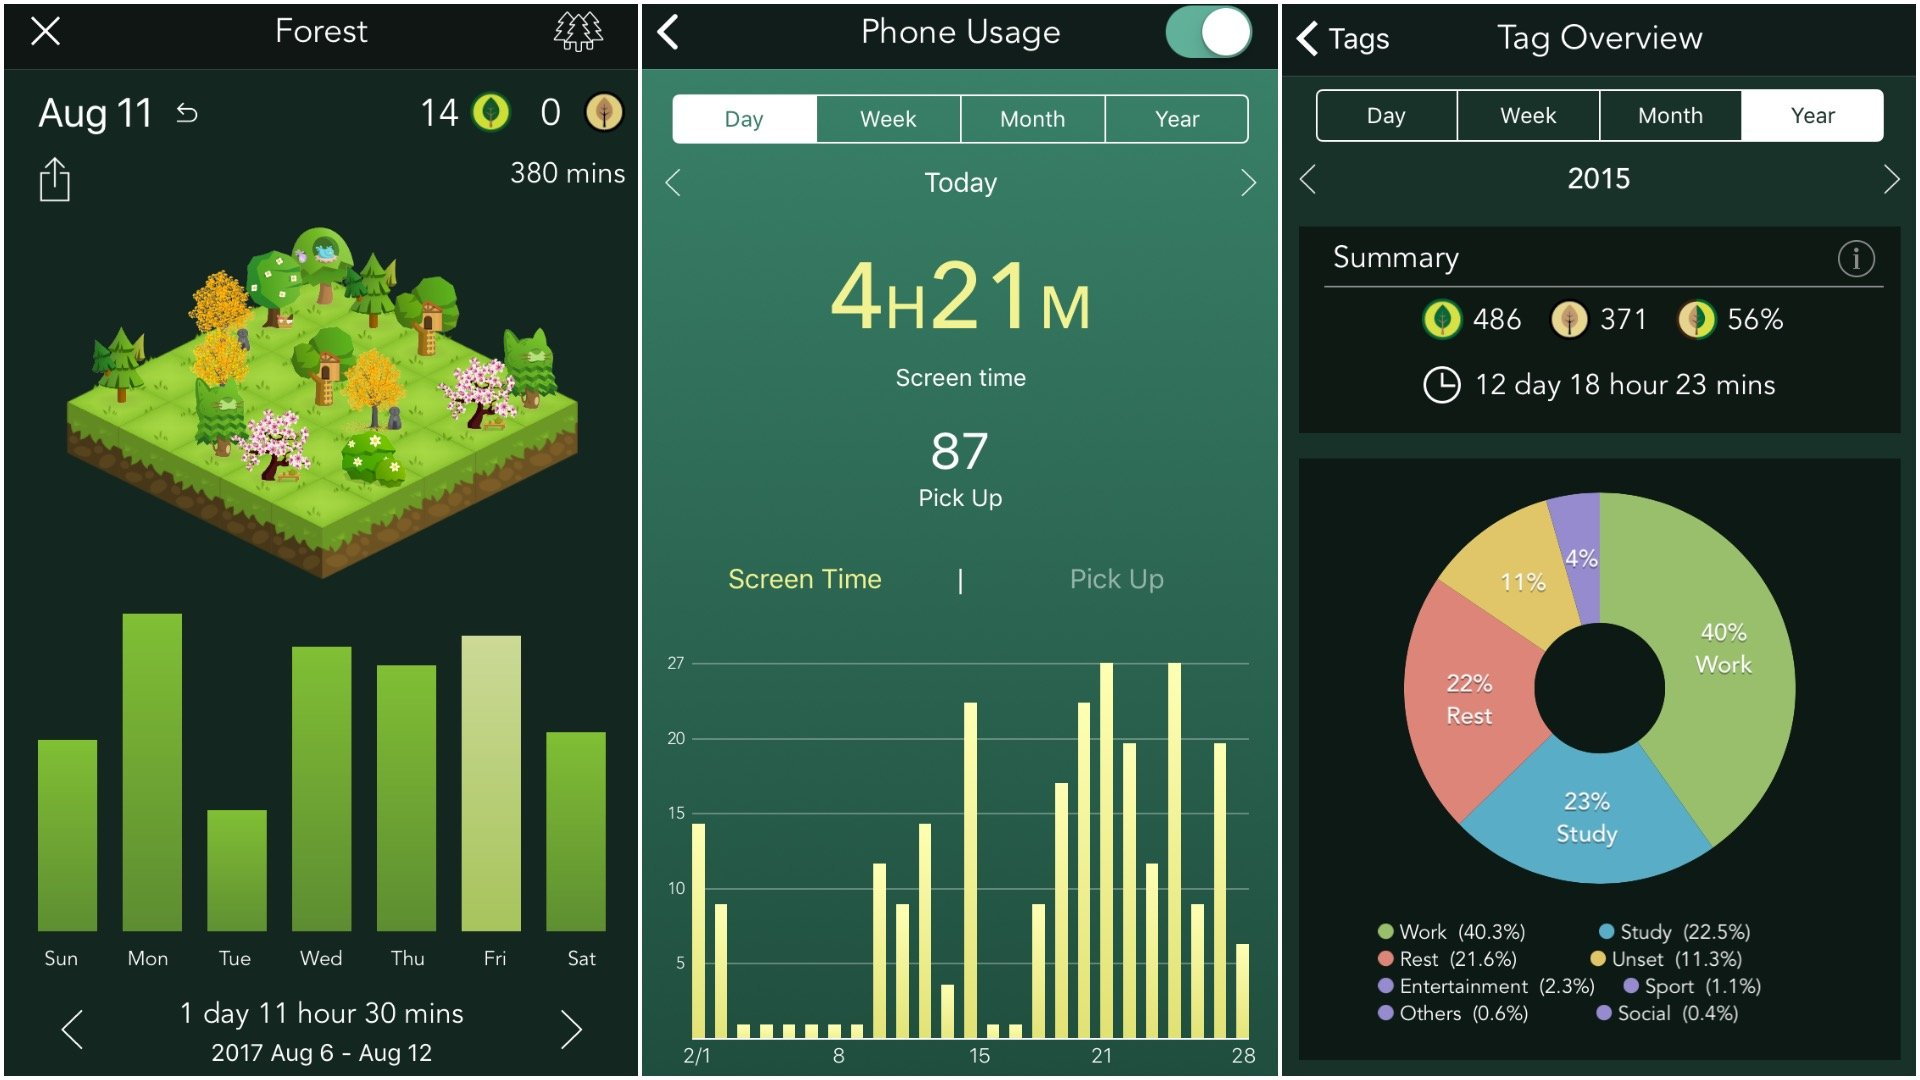 Forest's app helps you to spend less time on your phone.